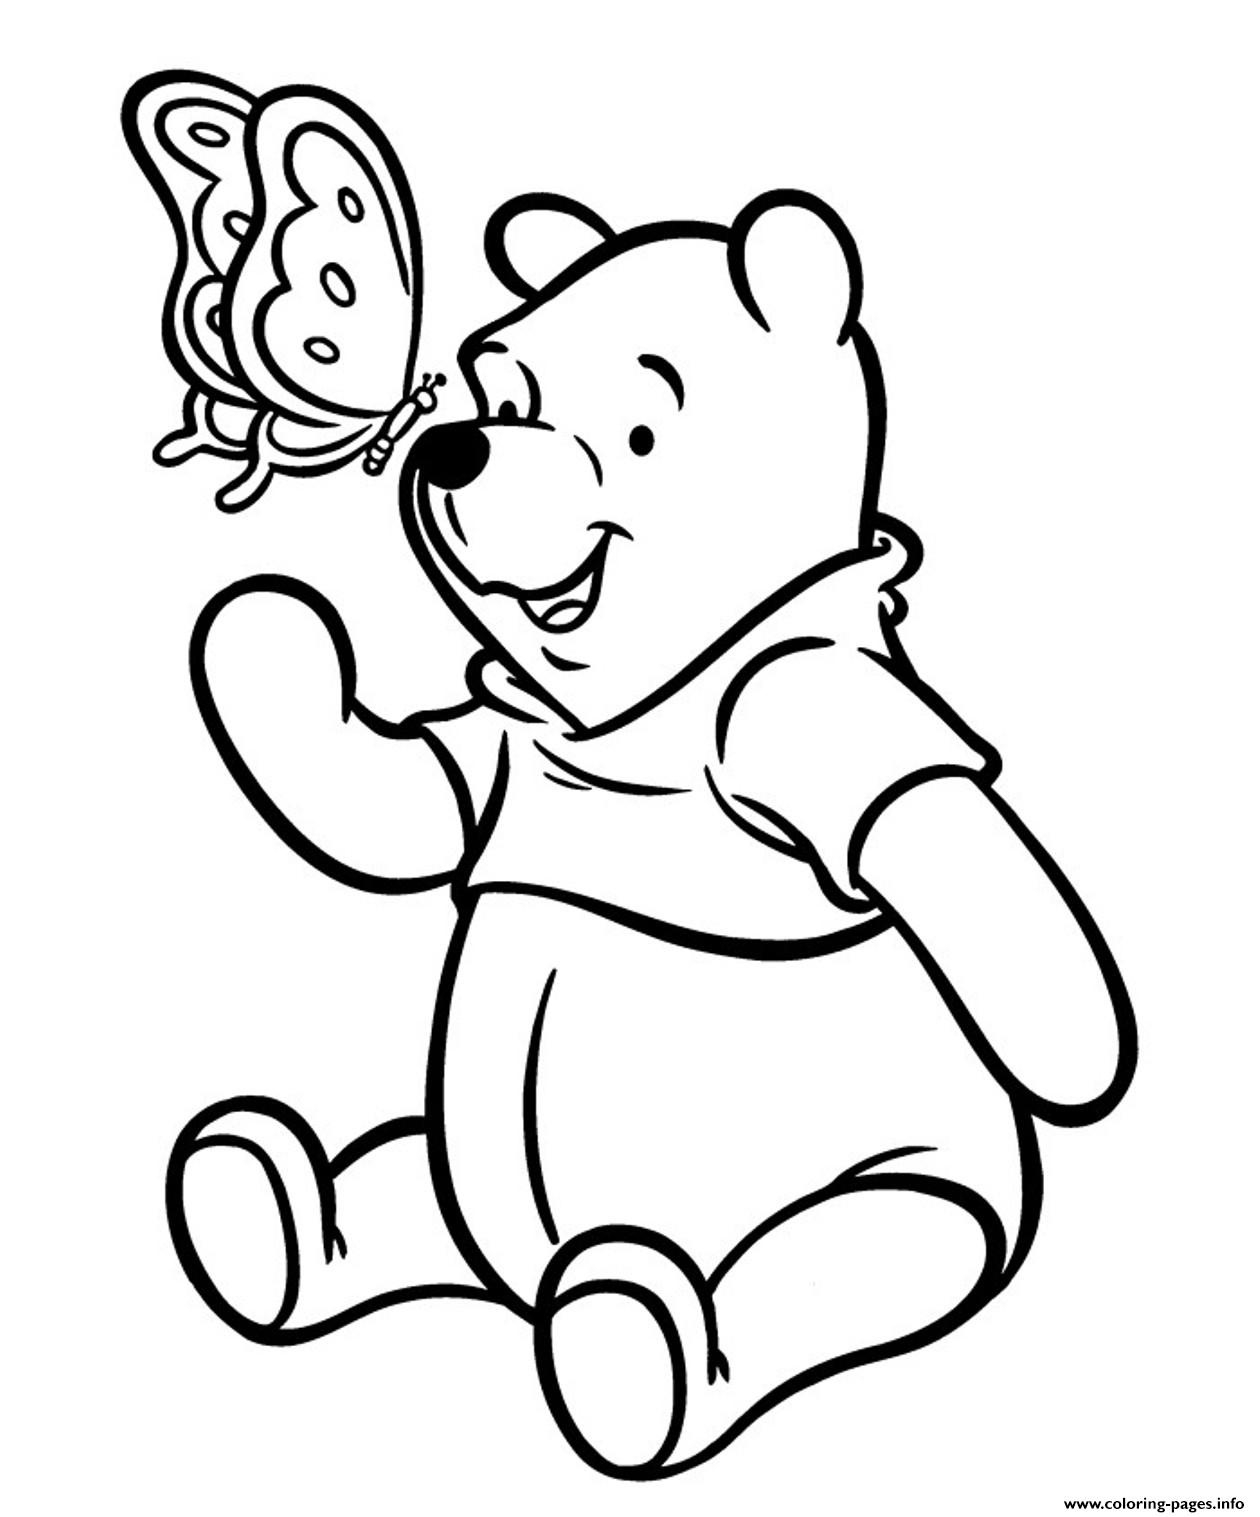 1260x1517 Winnie The Pooh Coloring Pages Alancastro New Cool Classic